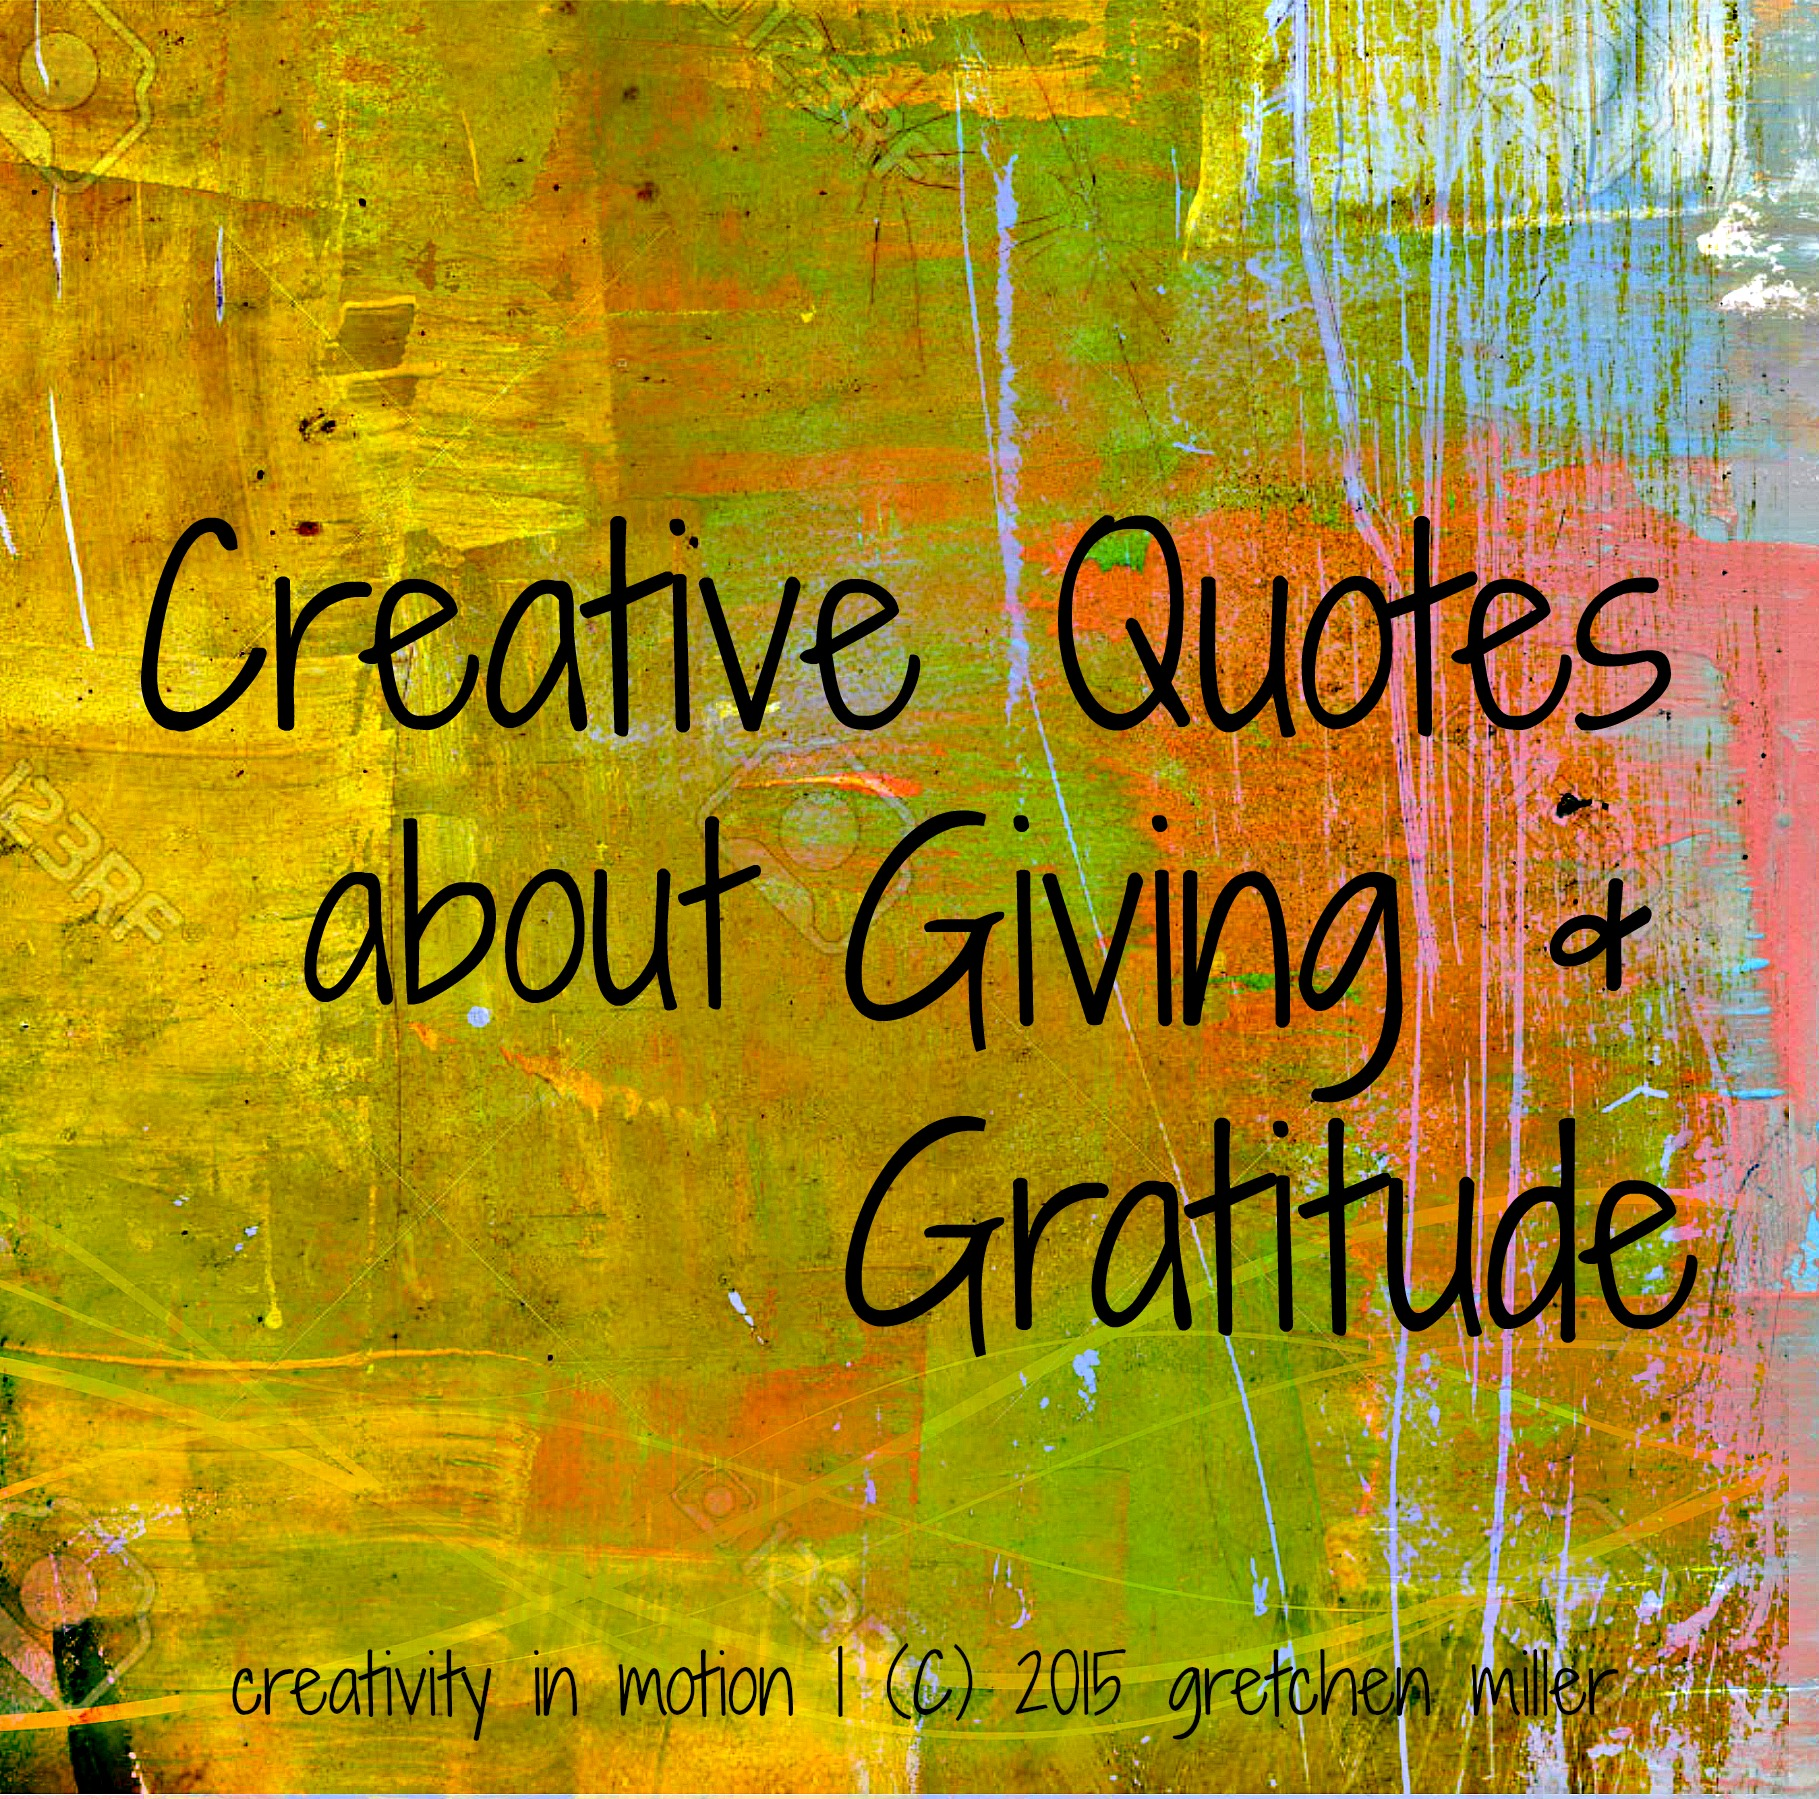 Quotes Gratitude 20 Creative Quotes On Giving & Gratitude  Creativity In Motion